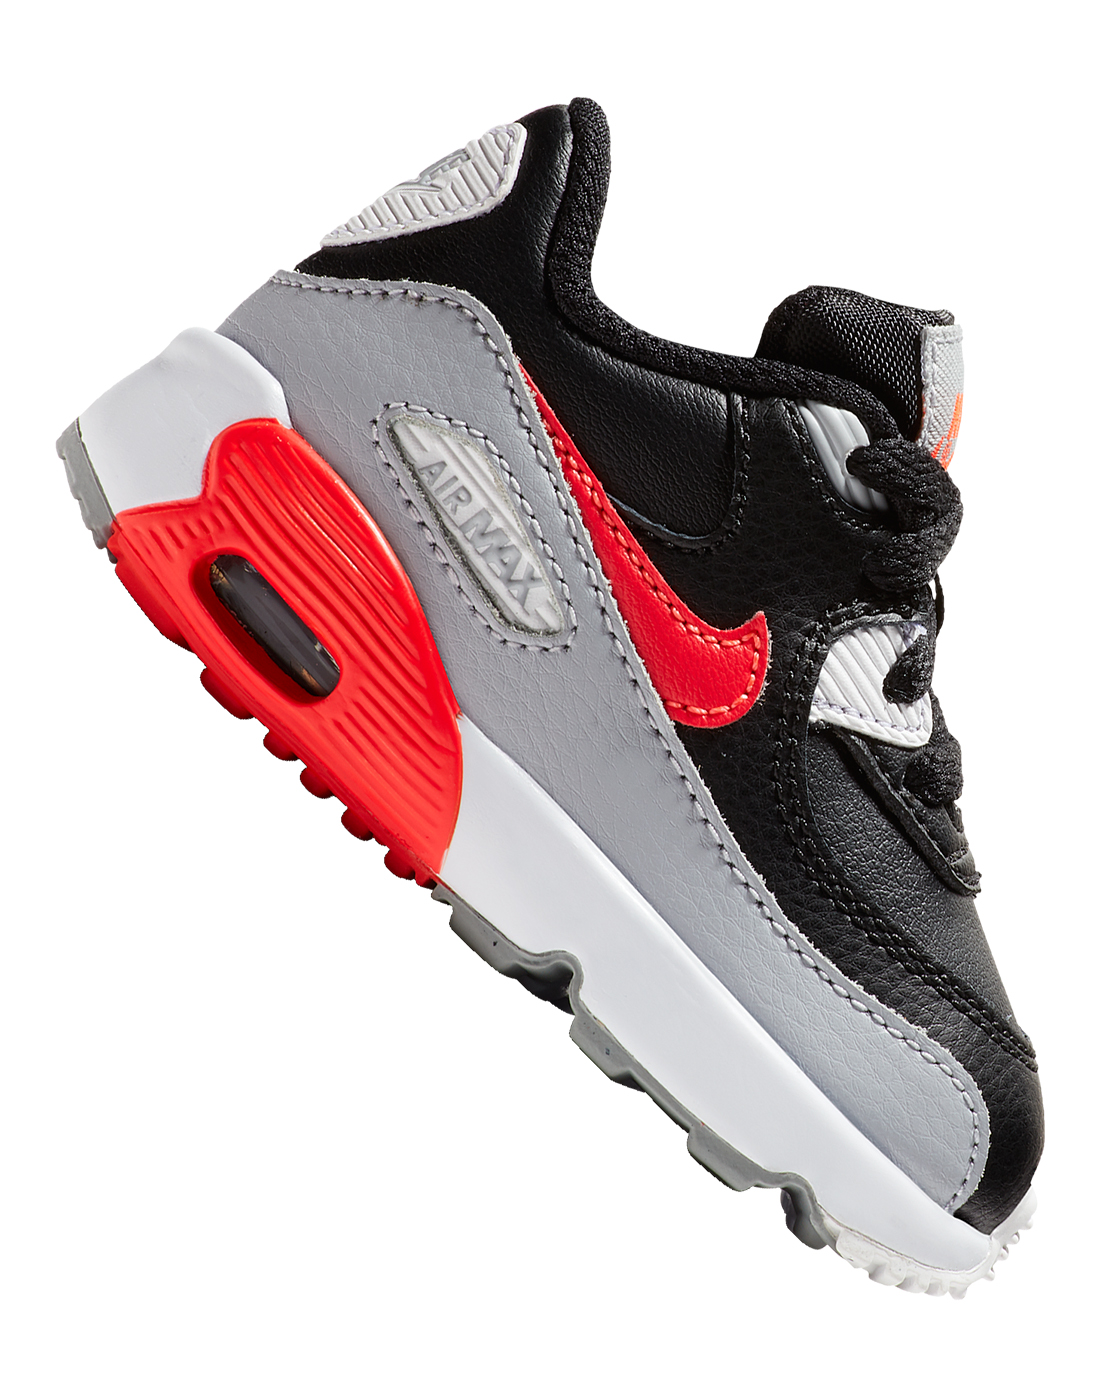 31617bde79 Infant Boy's Black Nike Air Max 90 Leather | Life Style Sports